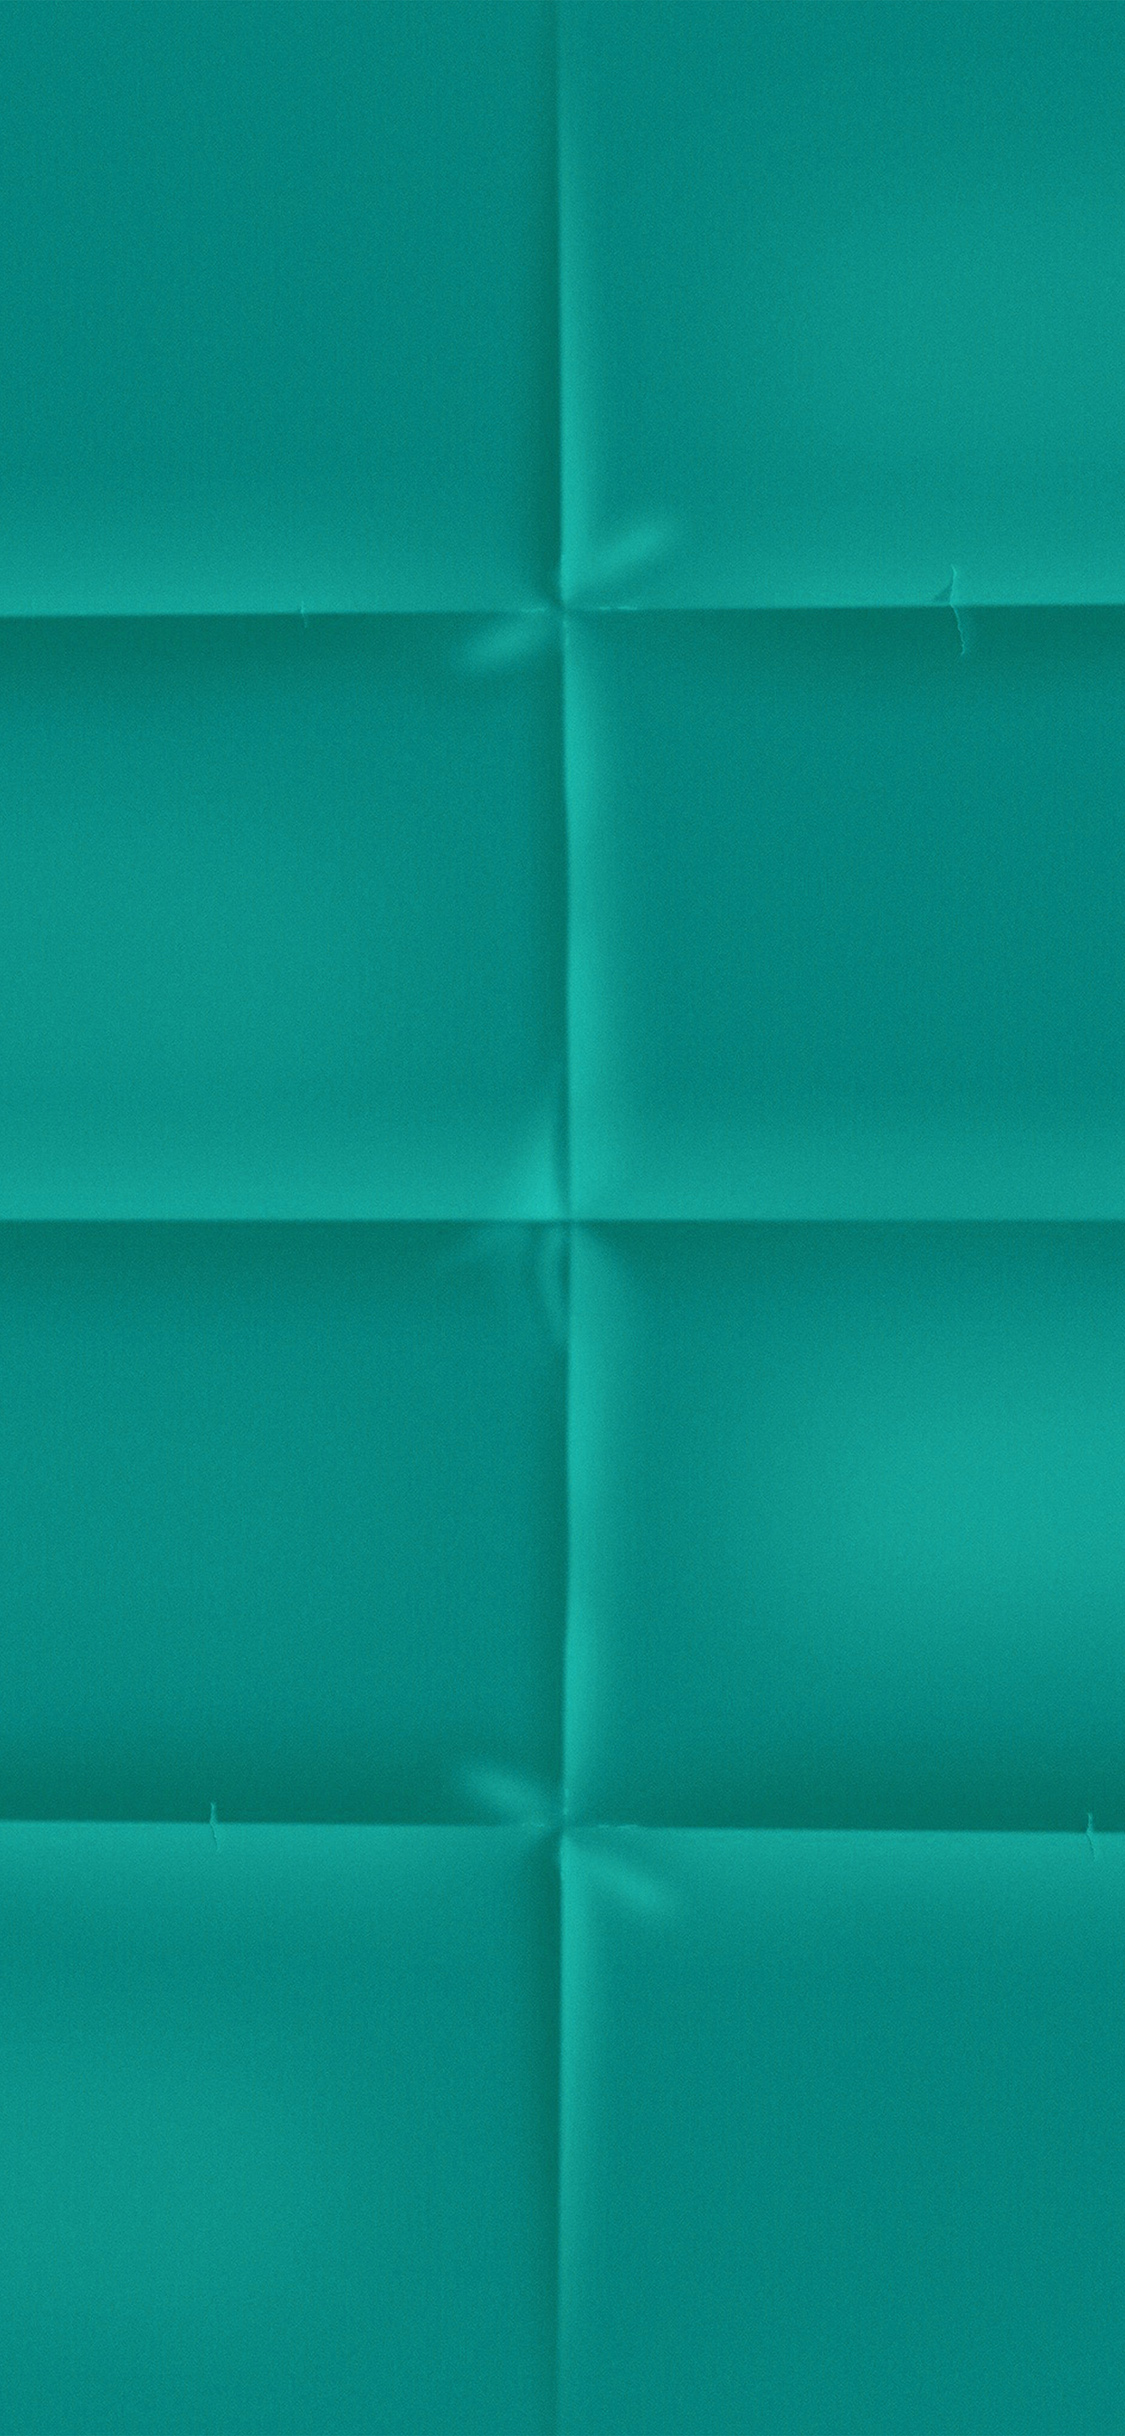 iPhonexpapers.com-Apple-iPhone-wallpaper-vu11-blue-green-texture-paper-pattern